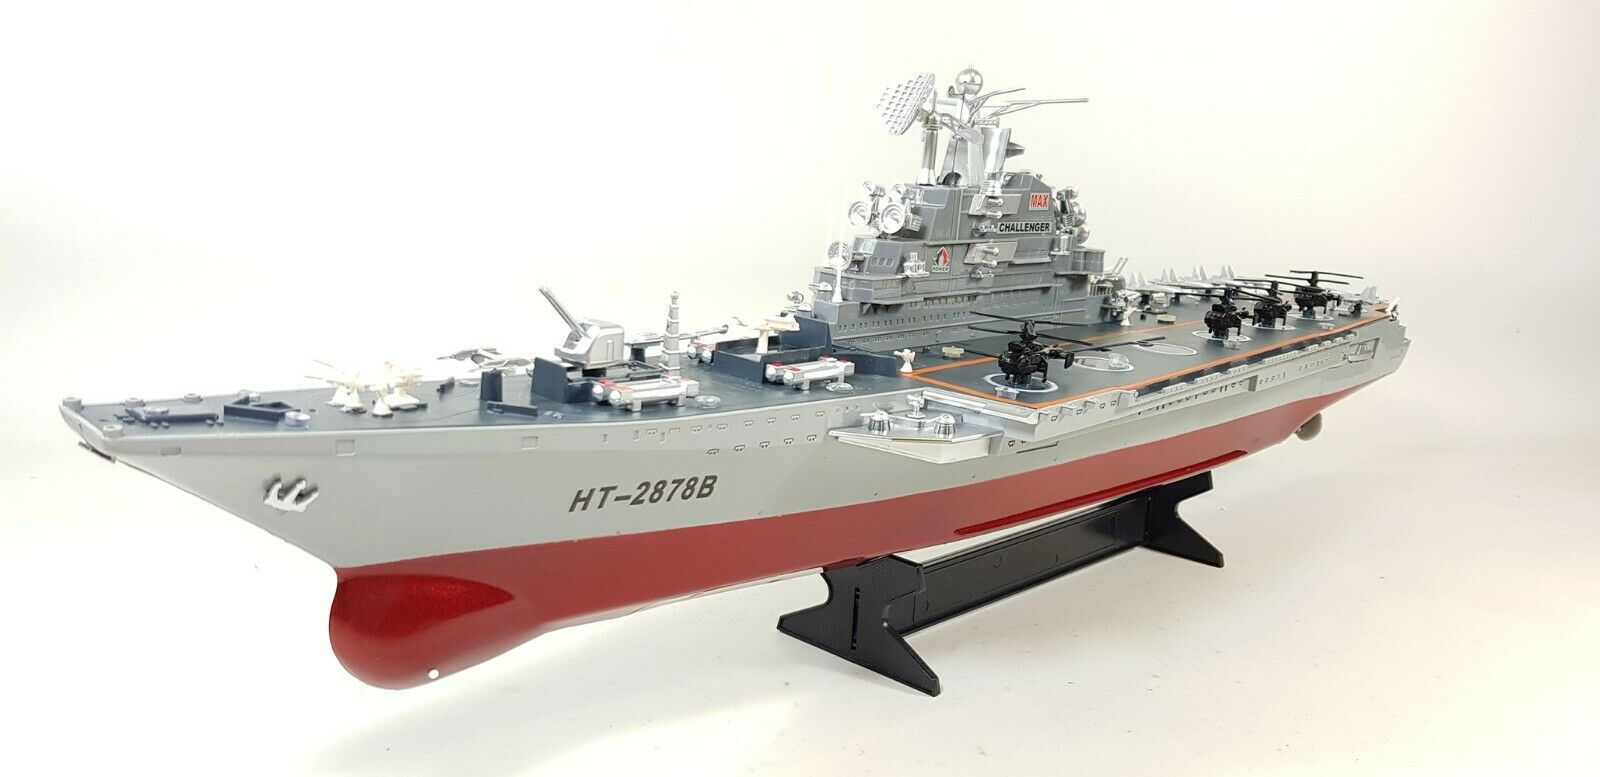 2.4GHz RC Radio Control Navy Aircraft bilrier Boat Warship Toy Gift